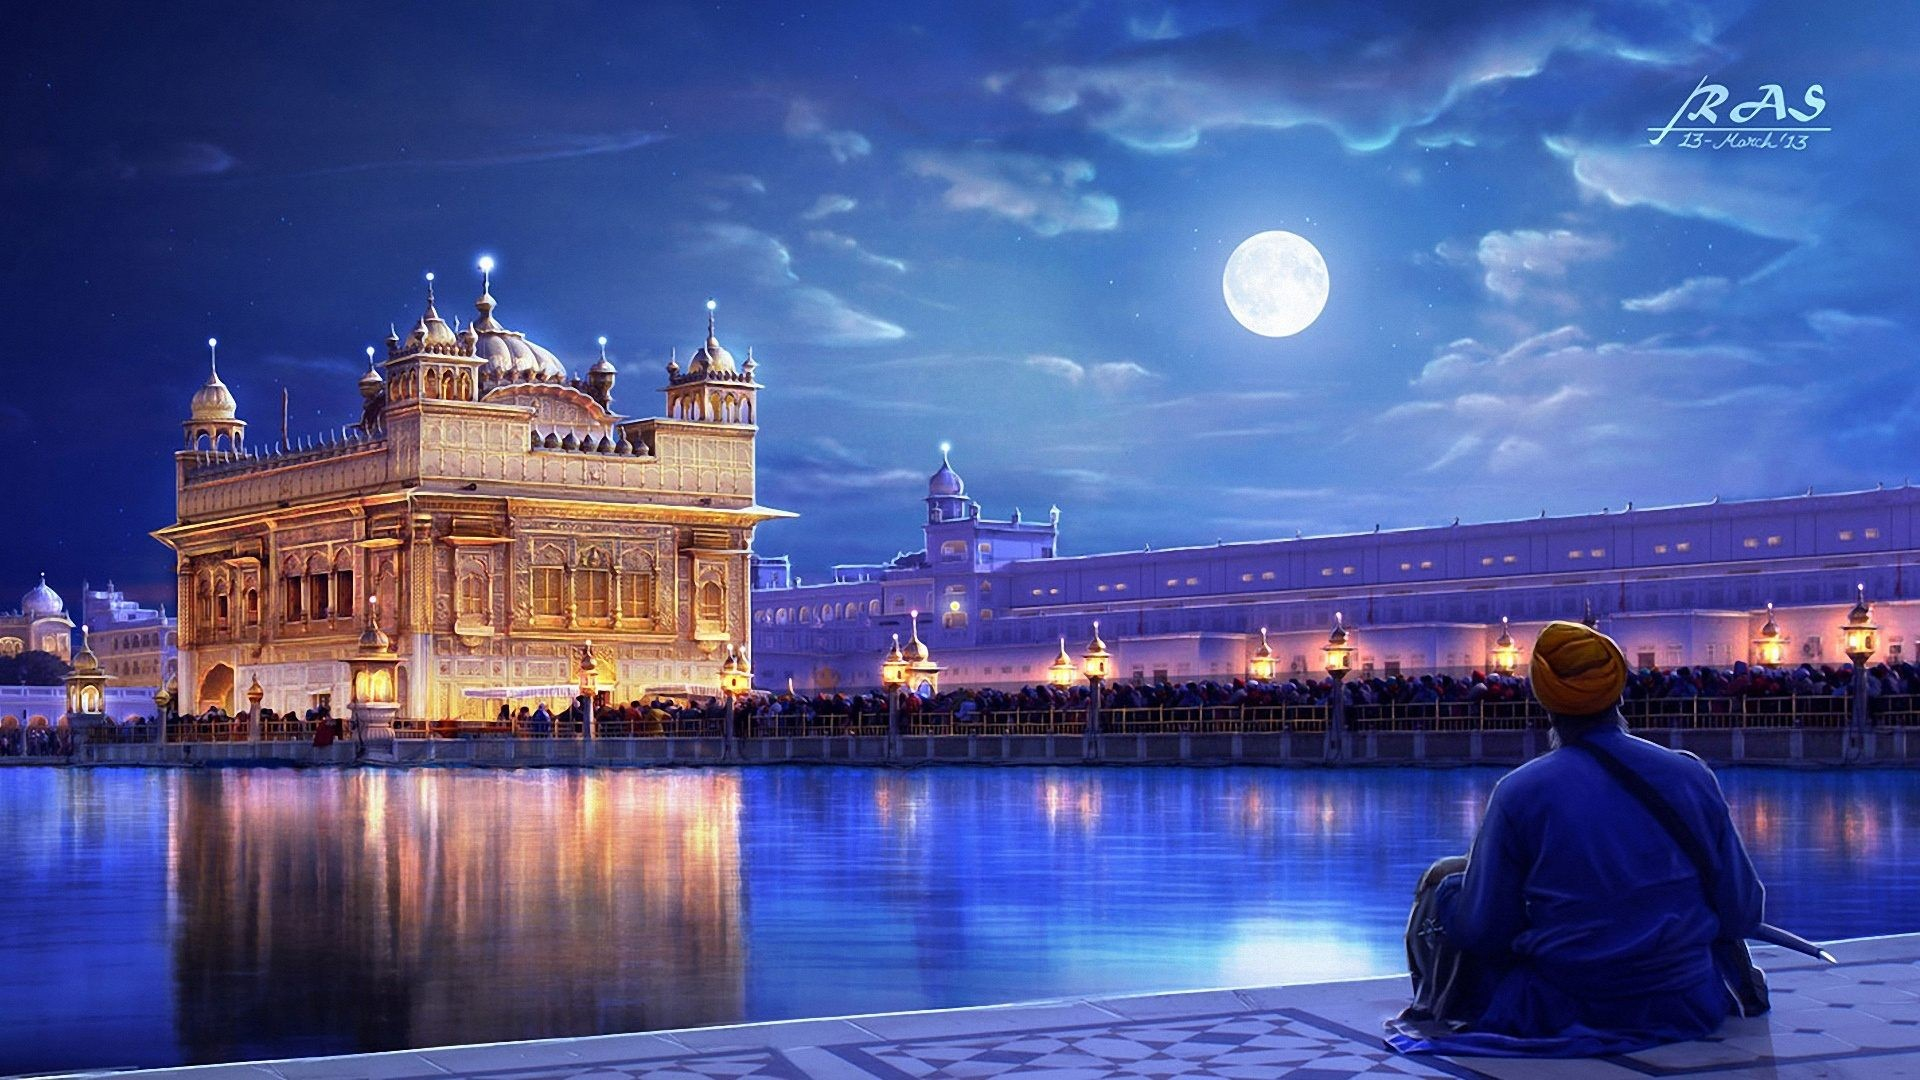 Harmandir Sahib Wallpapers Free Download